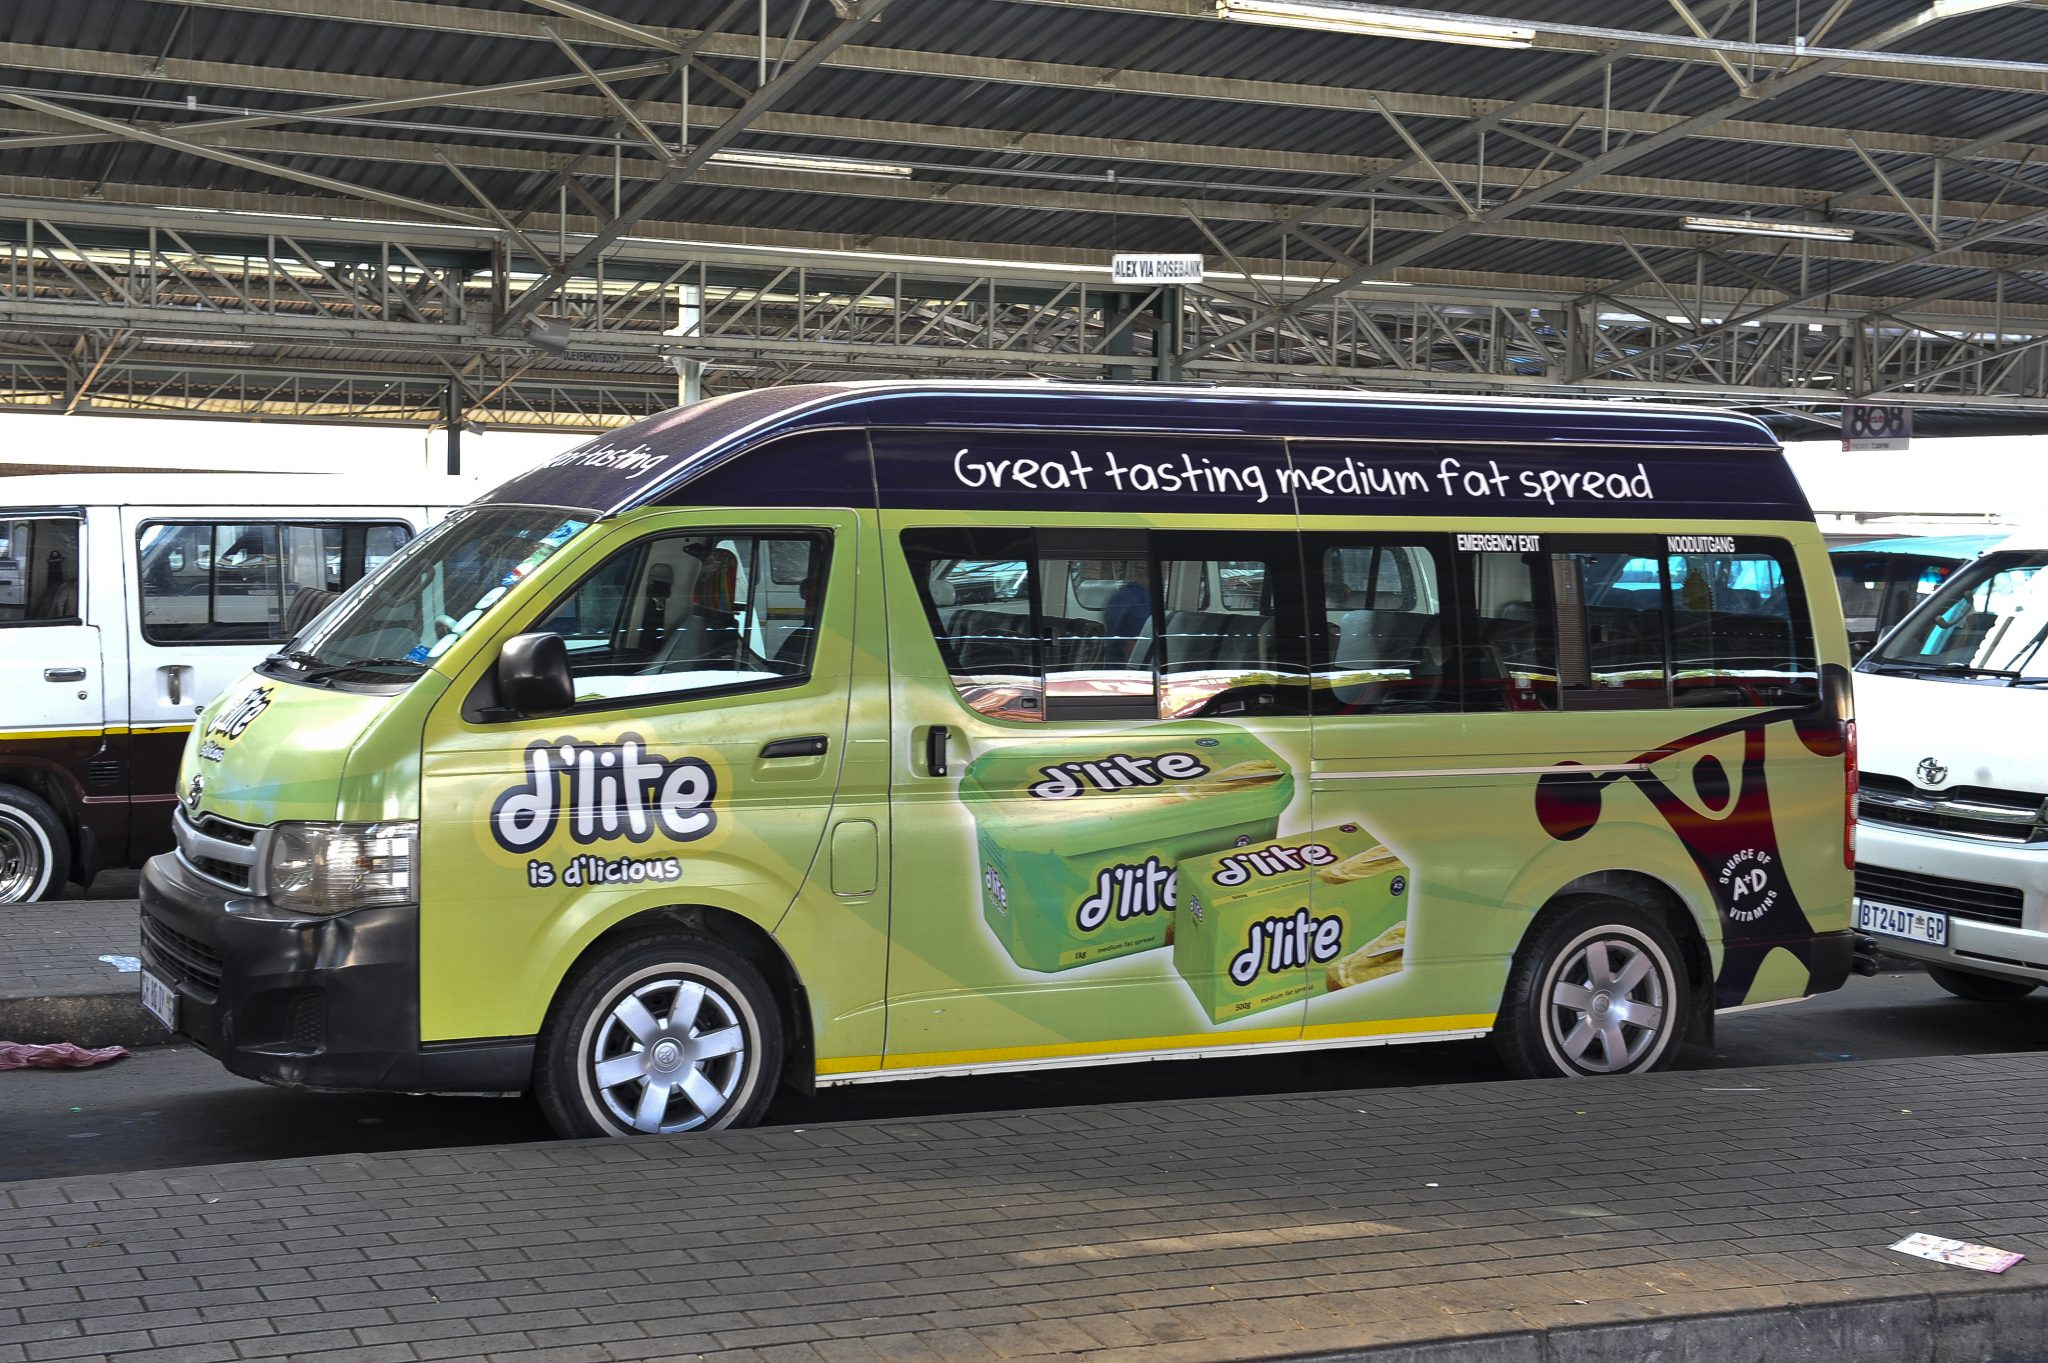 D Lite Branded Taxi